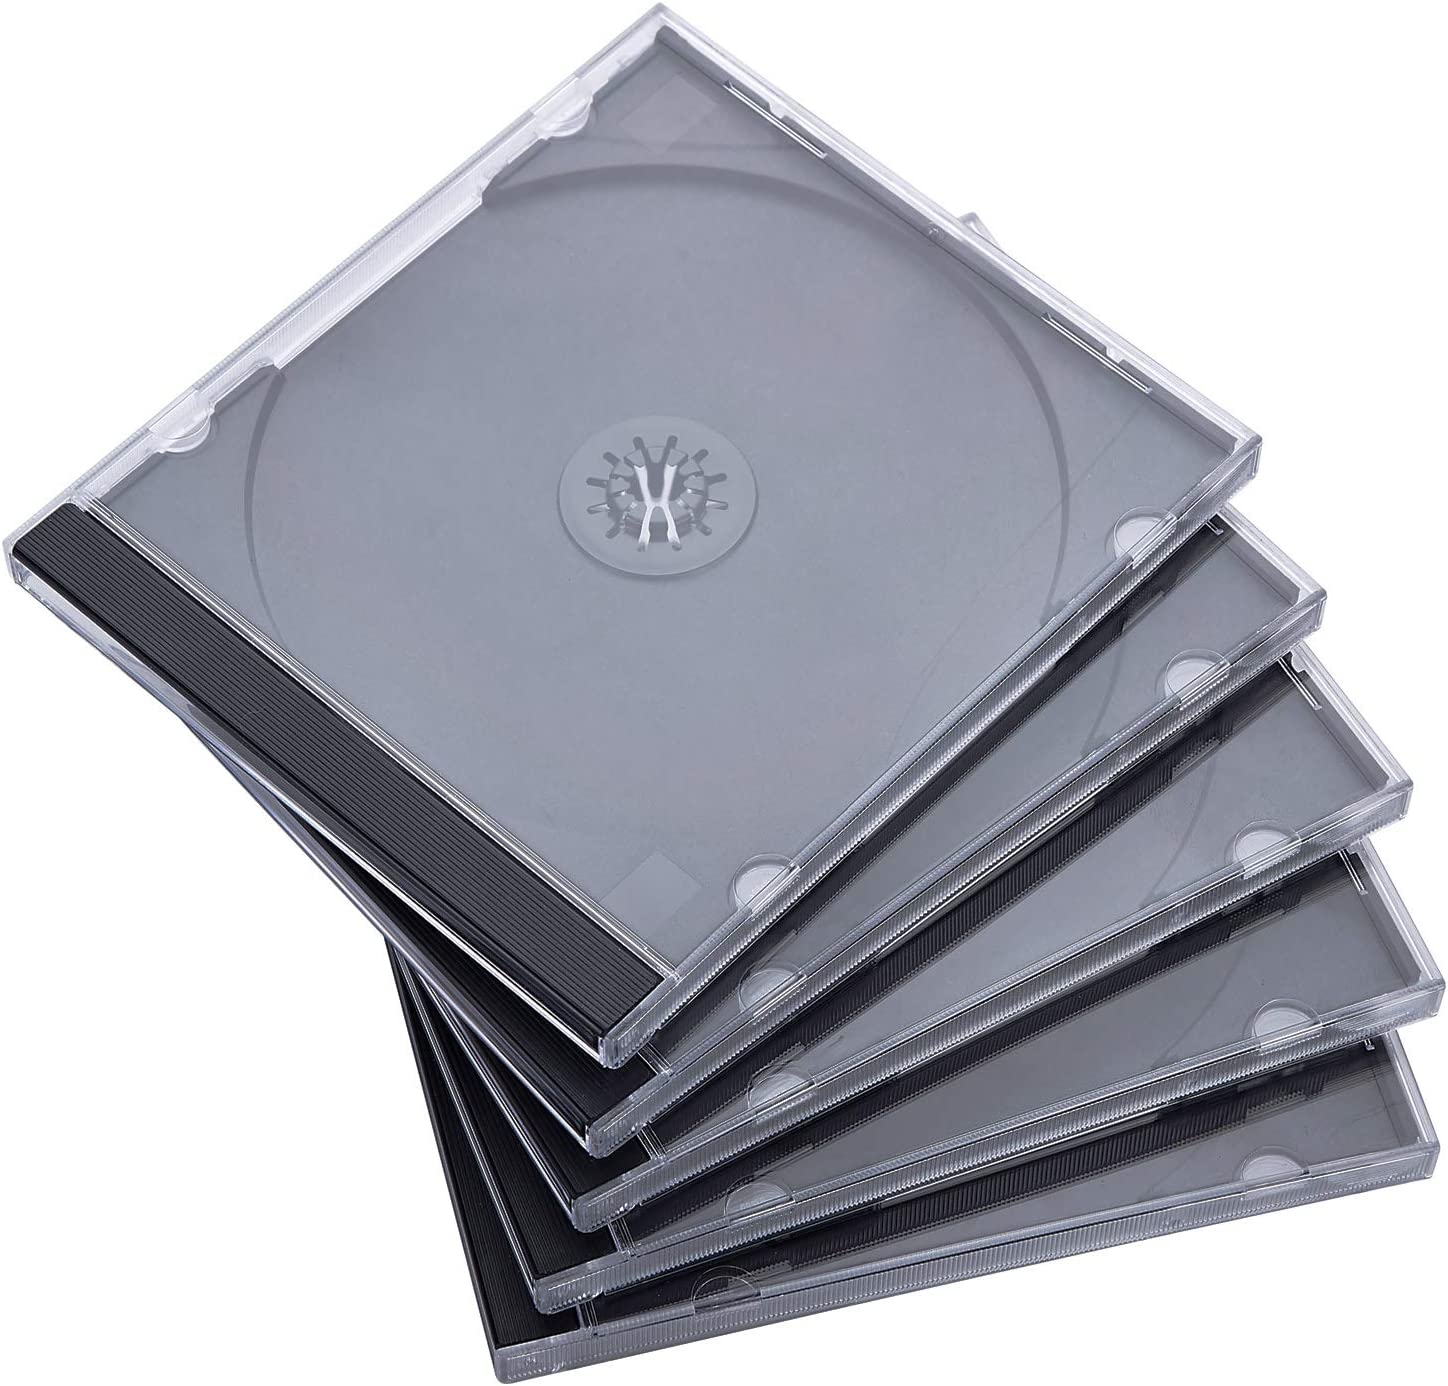 Maxtek 10.4 mm Standard Single Clear CD Jewel Case with Assembled Black Tray 50 Pack